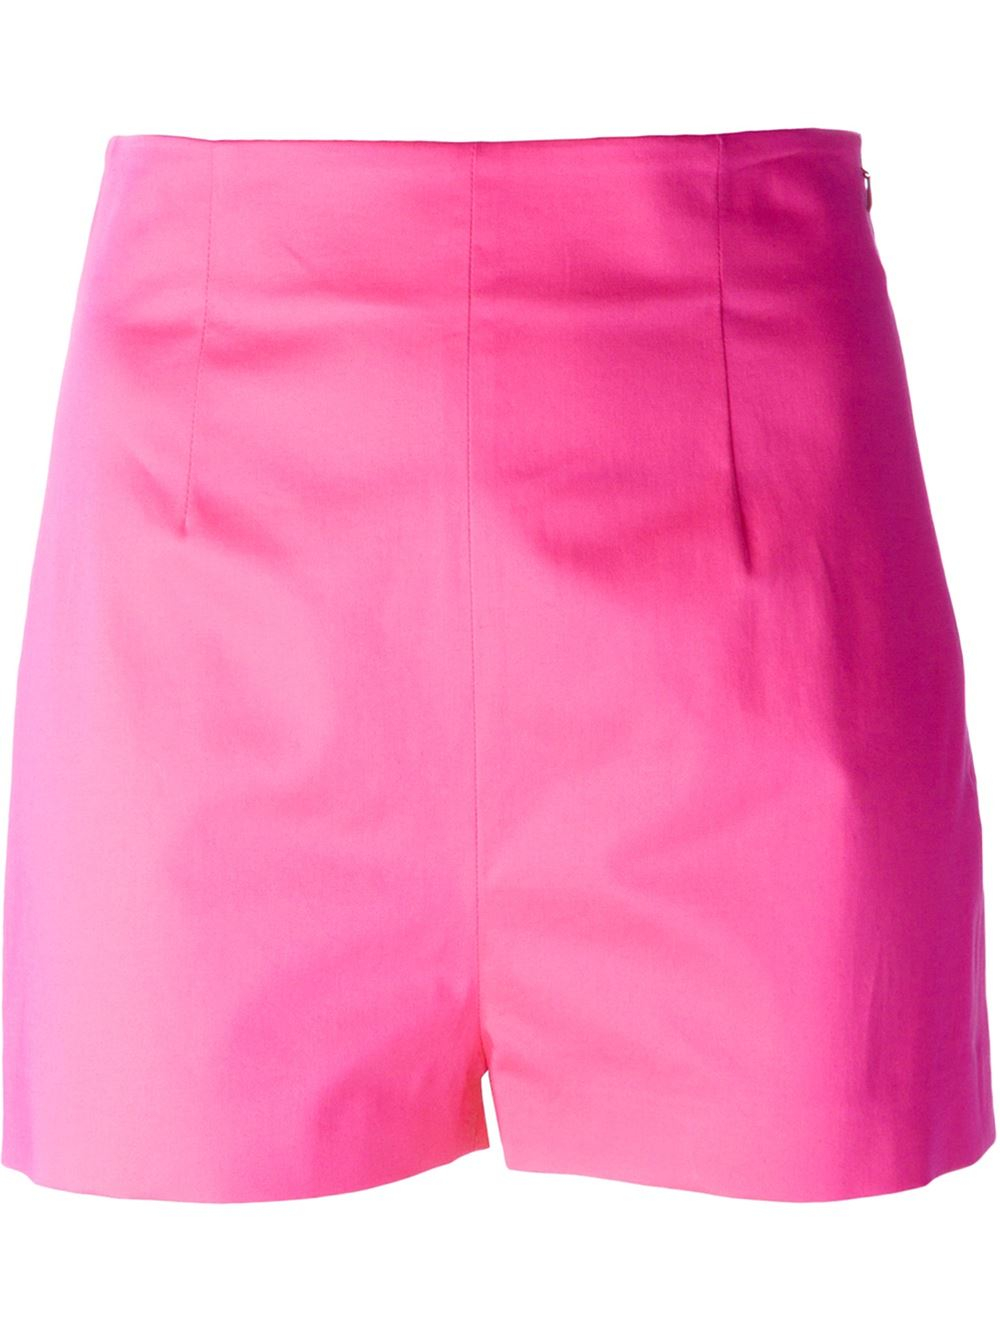 Moschino High Waisted Shorts In Pink Pink Amp Purple Lyst